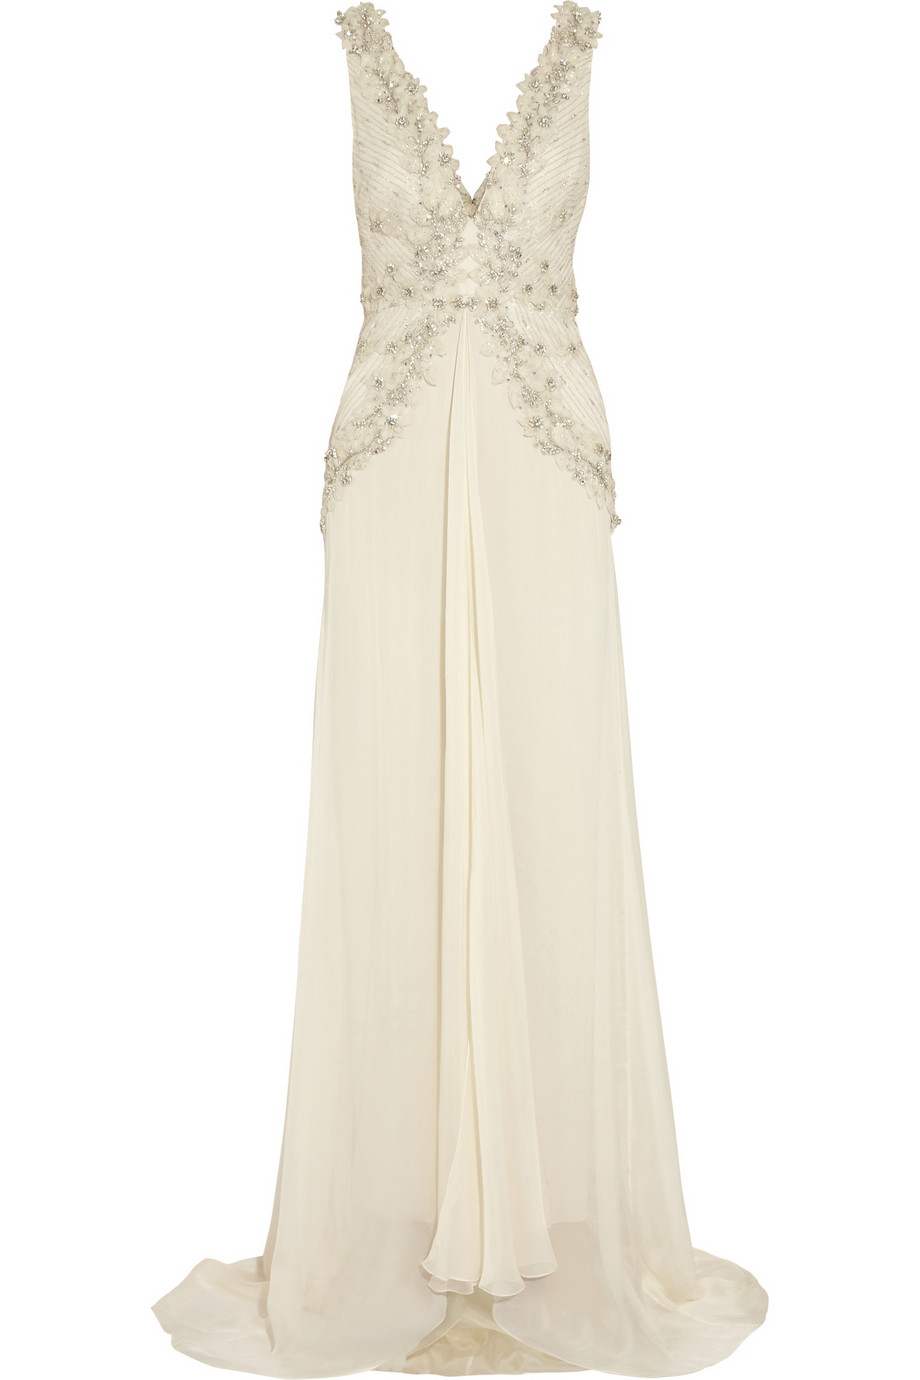 12 Non Typical Designer Wedding Dresses Featuring Lanvin